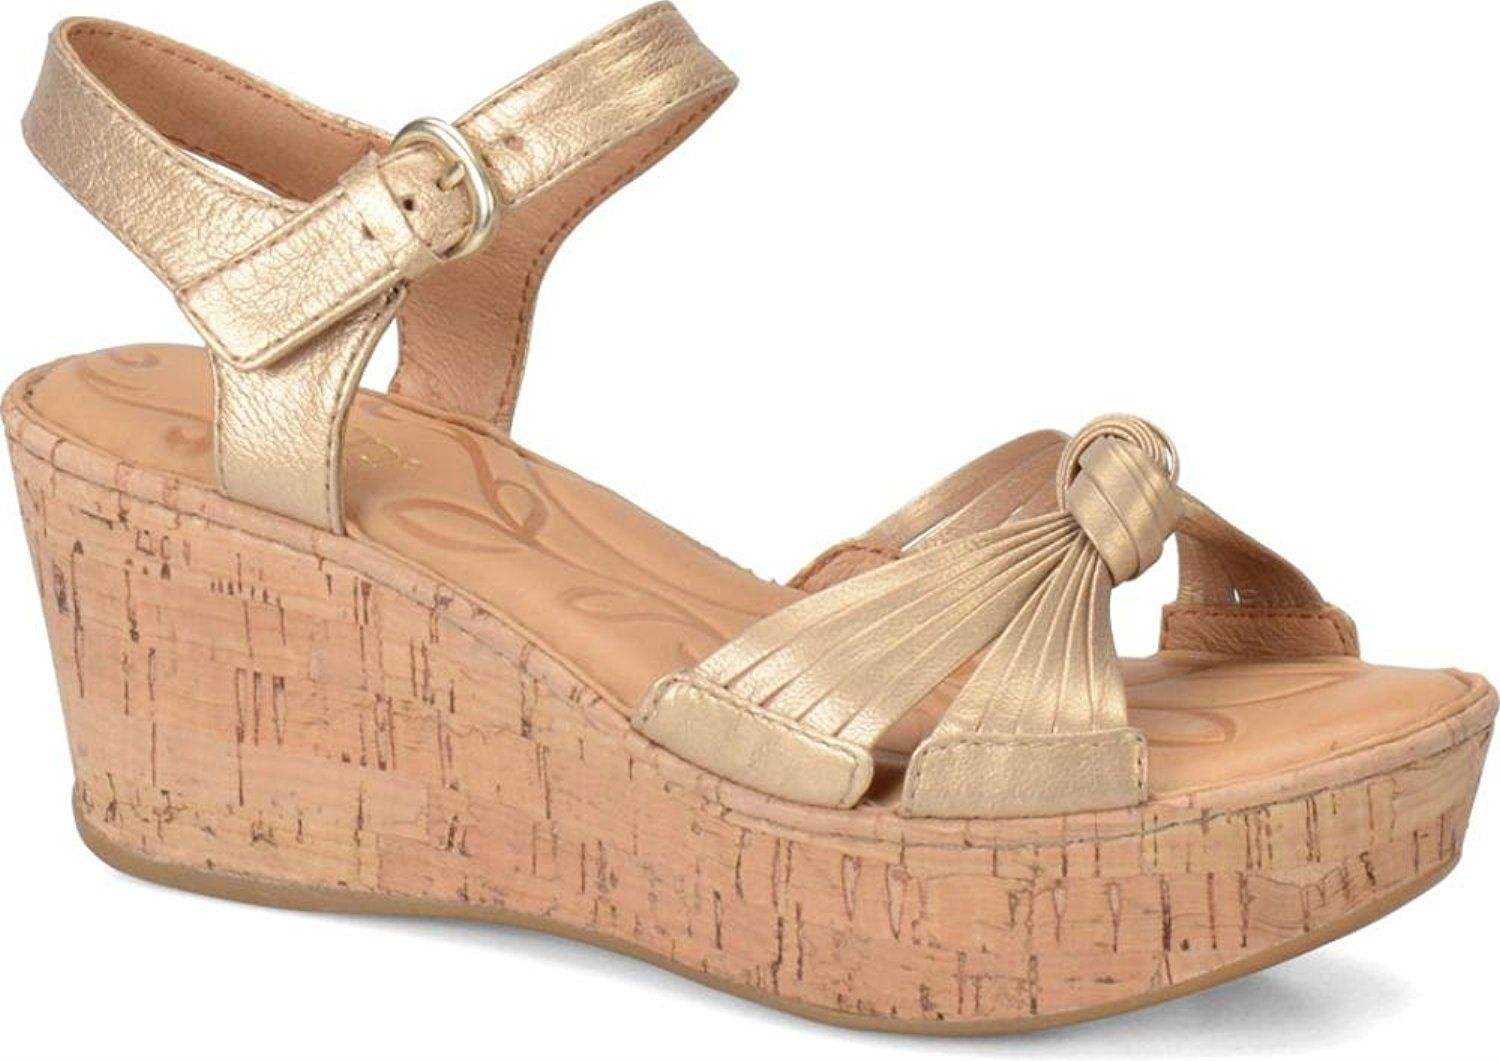 6f075120be Born Women's Skye Sandal -- Insider's special review you can't miss. Read  more : Block heel sandals